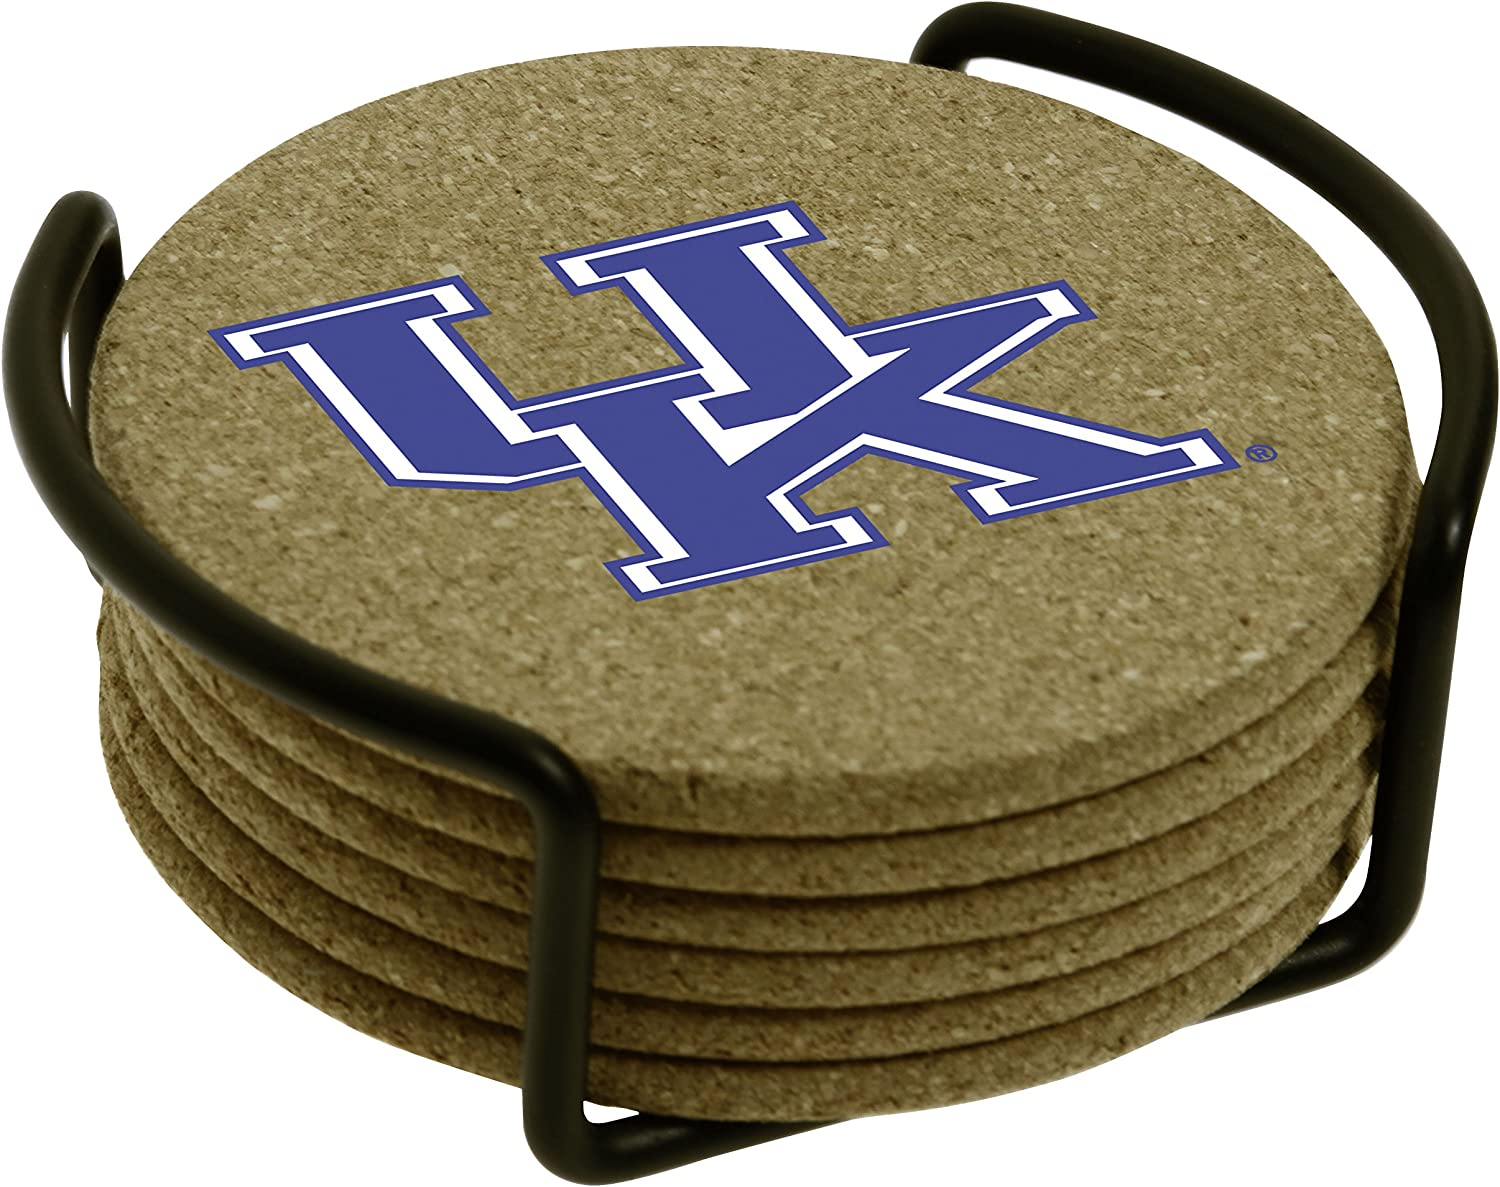 Thirstystone University of Kentucky with Holder Included Cork Gift Set